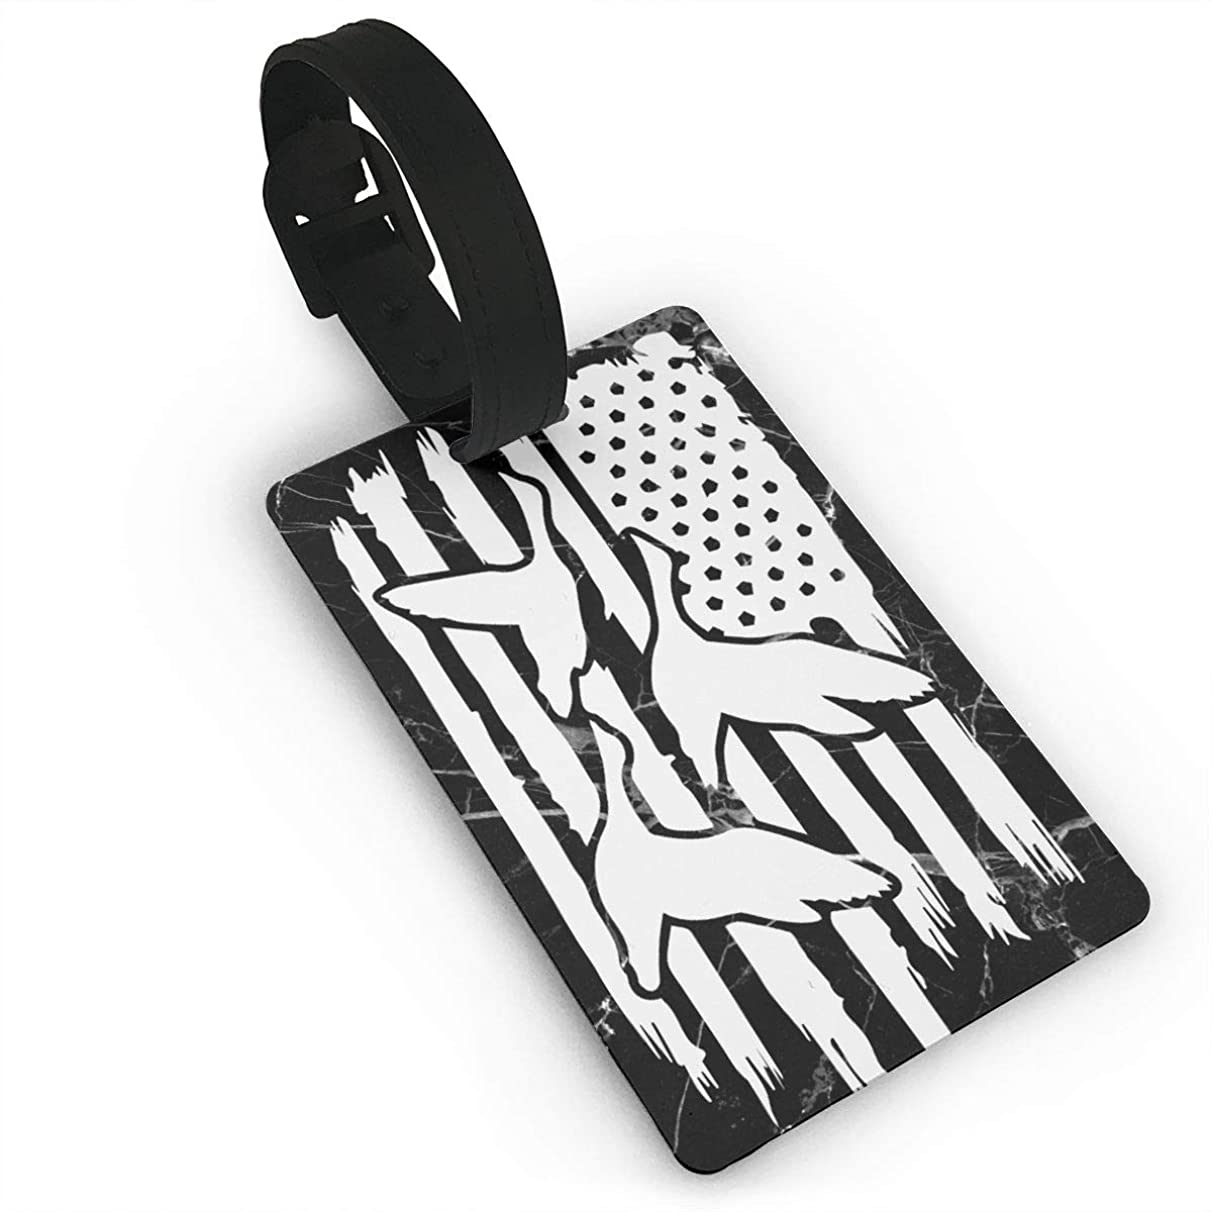 J1S0H0RTBAG American Flag Duck Hunter Luggage Tag & Bag Tags Travel ID Identification Labels for Men Women Golf Bags Luggage Bag